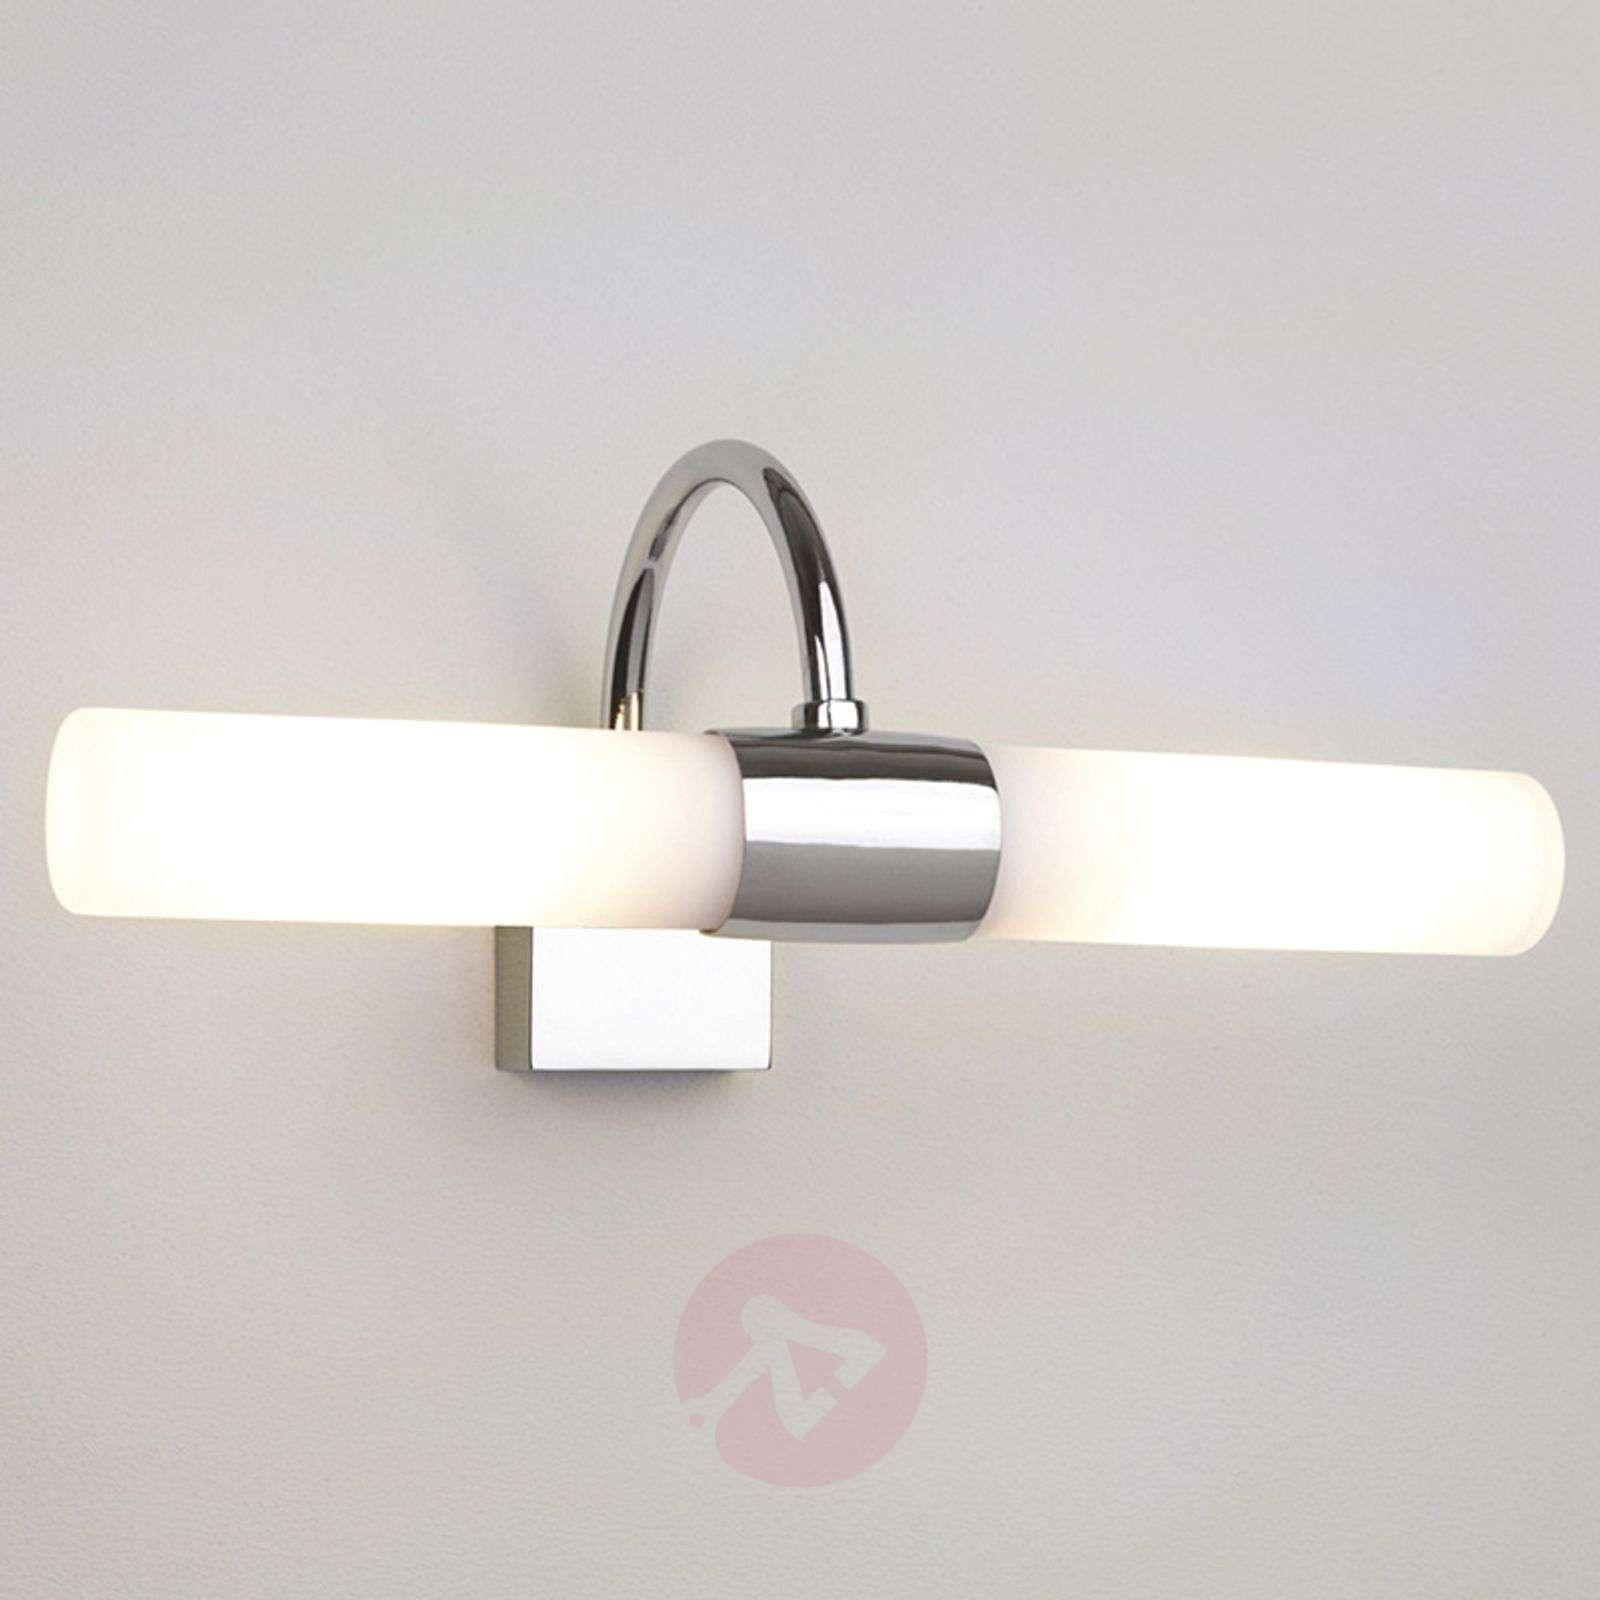 Dayton Wall Light for the Mirror White-1020020-02